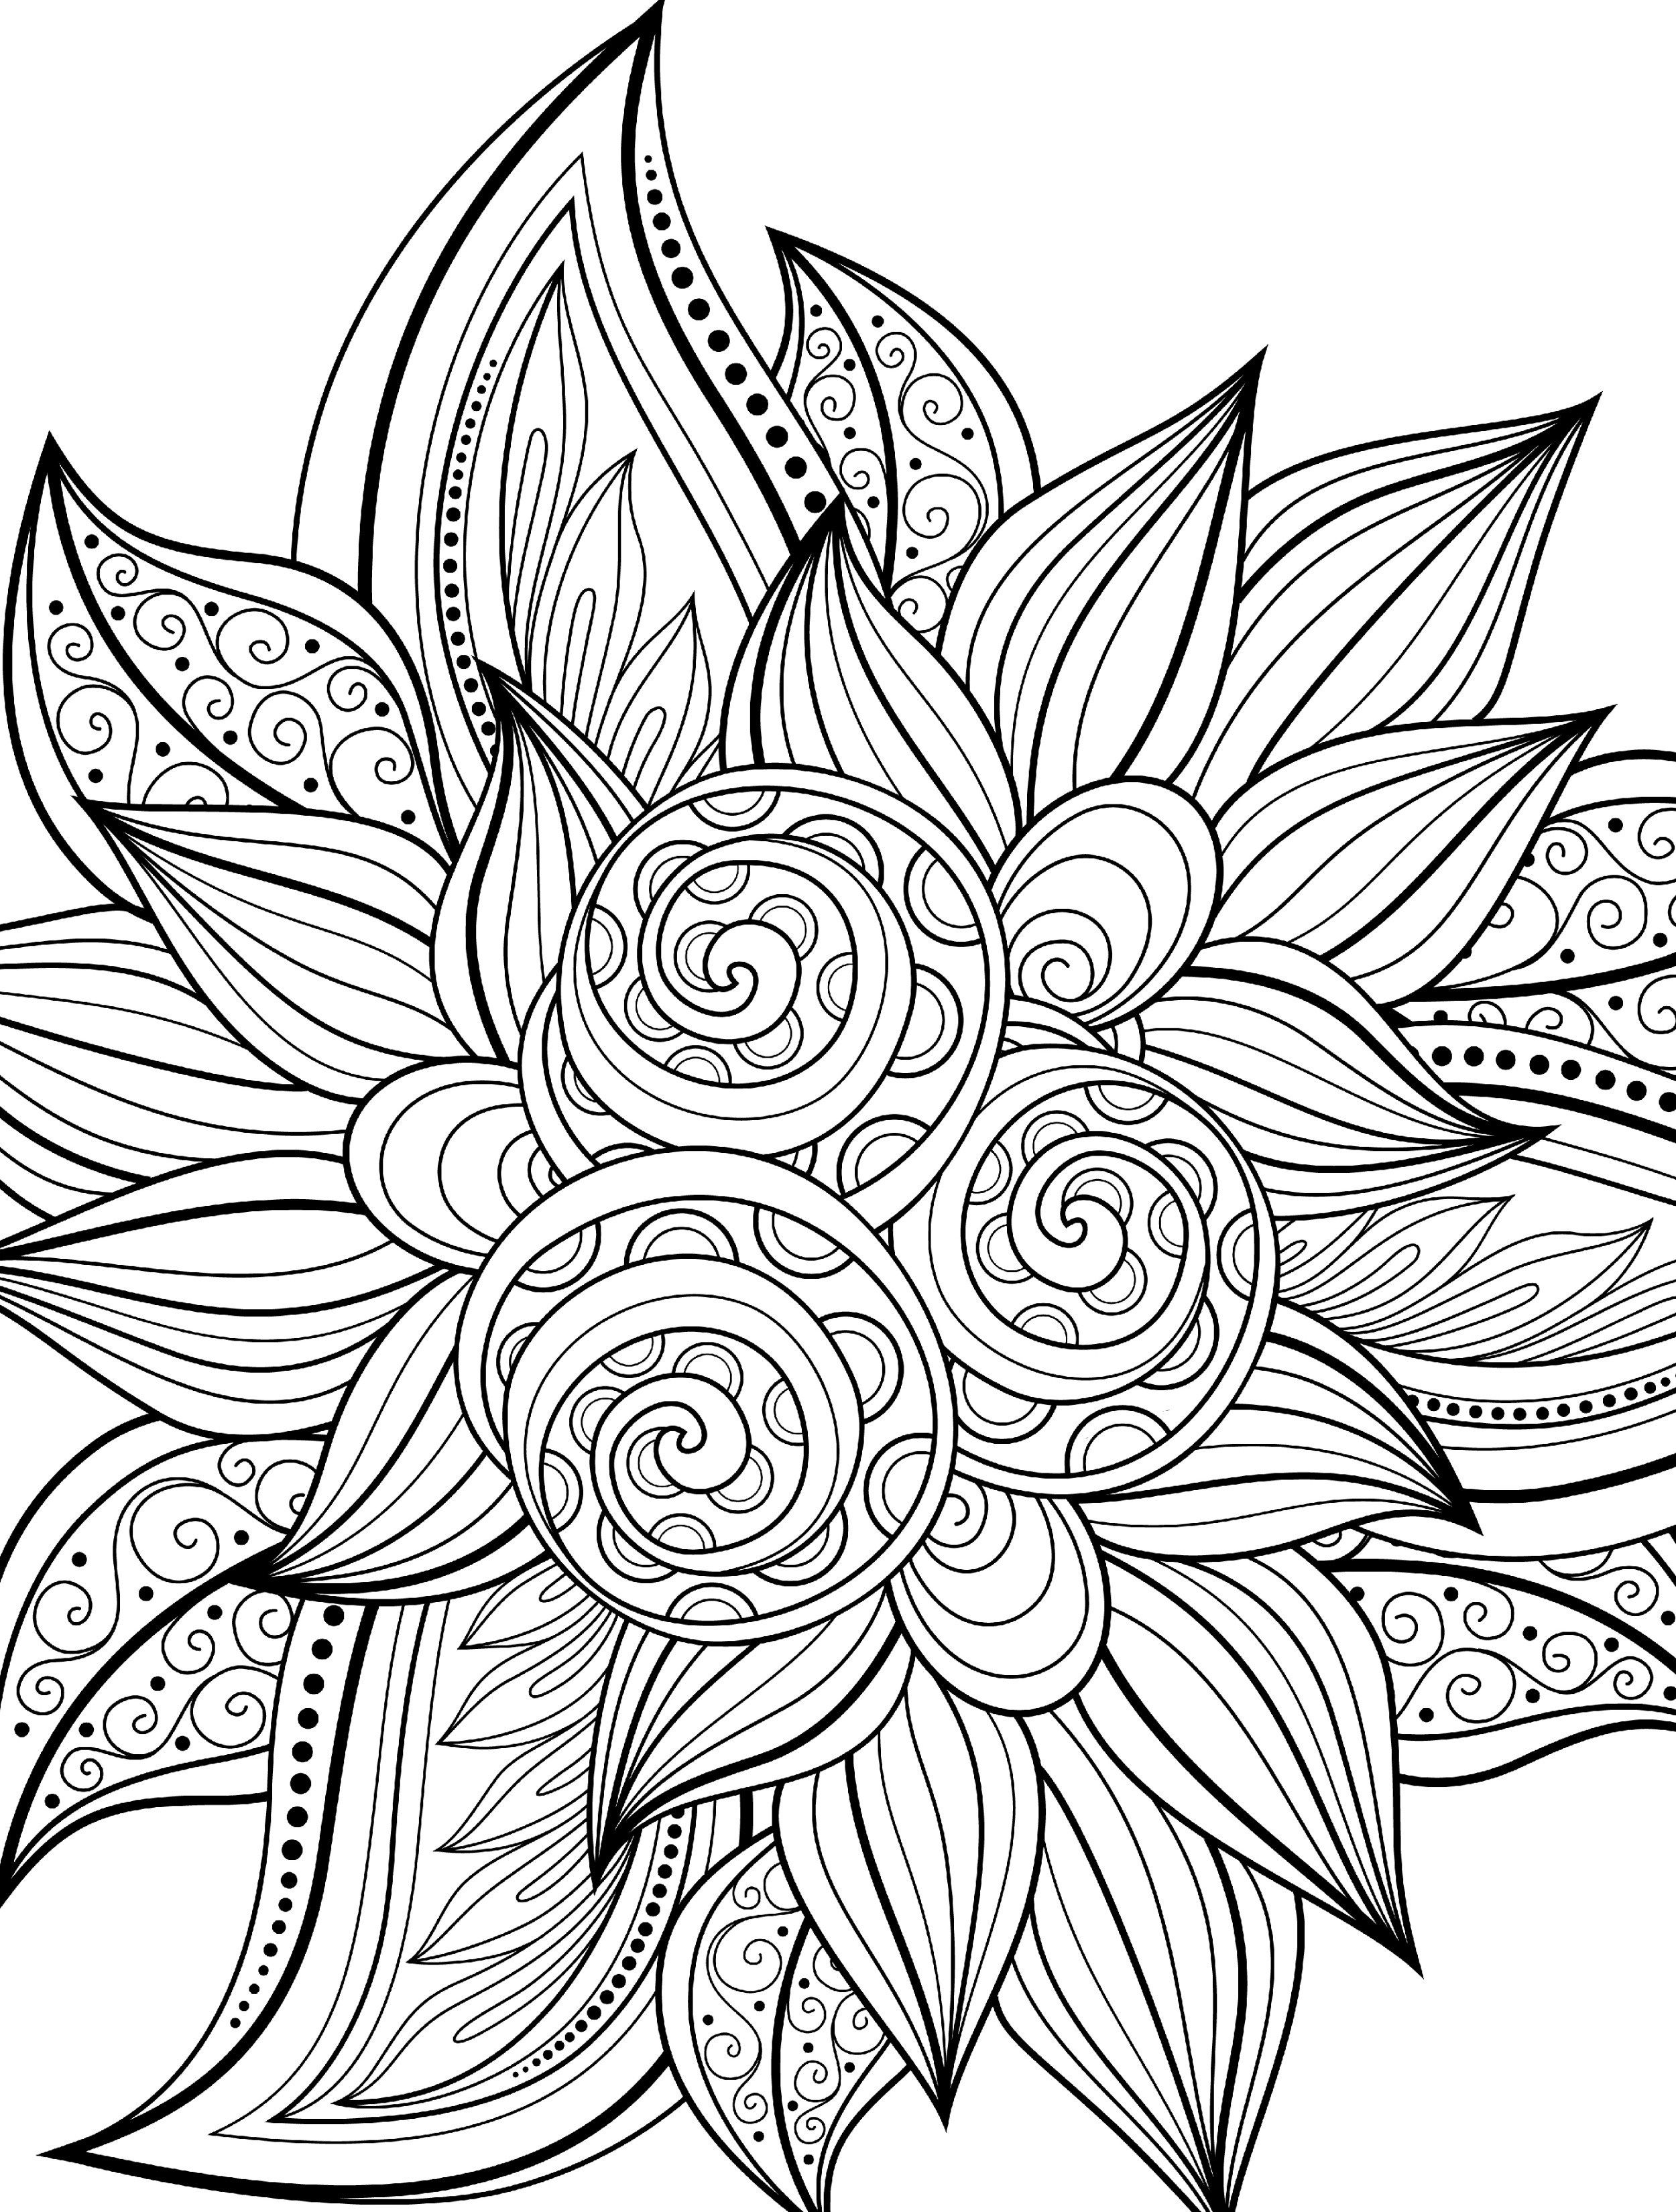 free coloring pages for adults thanksgiving : 10 Free Printable Holiday Adult Coloring Pages